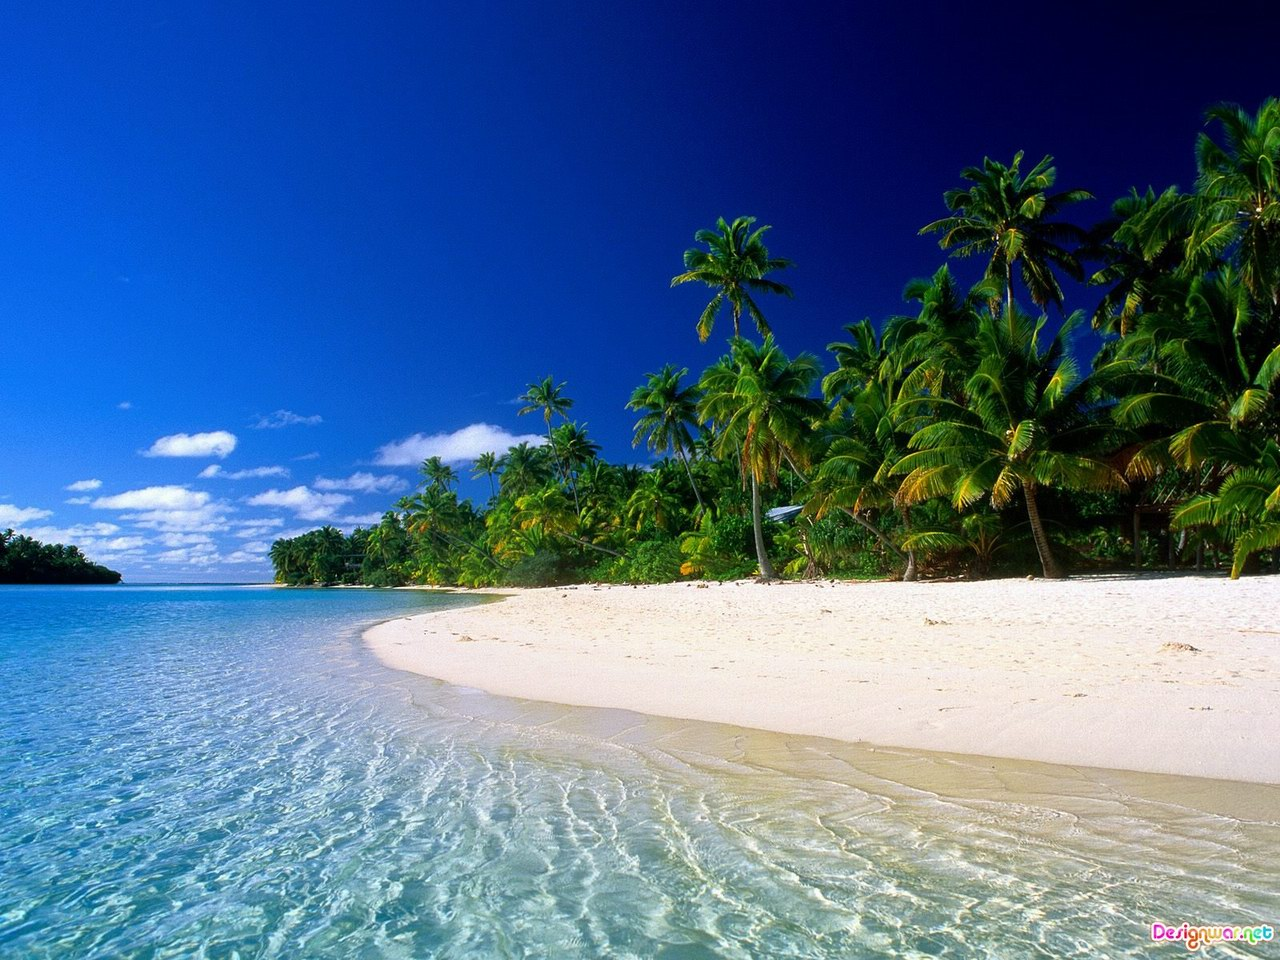 http://2.bp.blogspot.com/-g6gtt1zS2sI/Tb92v_VqA8I/AAAAAAAAAAg/1WNNcyP-tn0/s1600/beautiful_tropical_beach.jpg